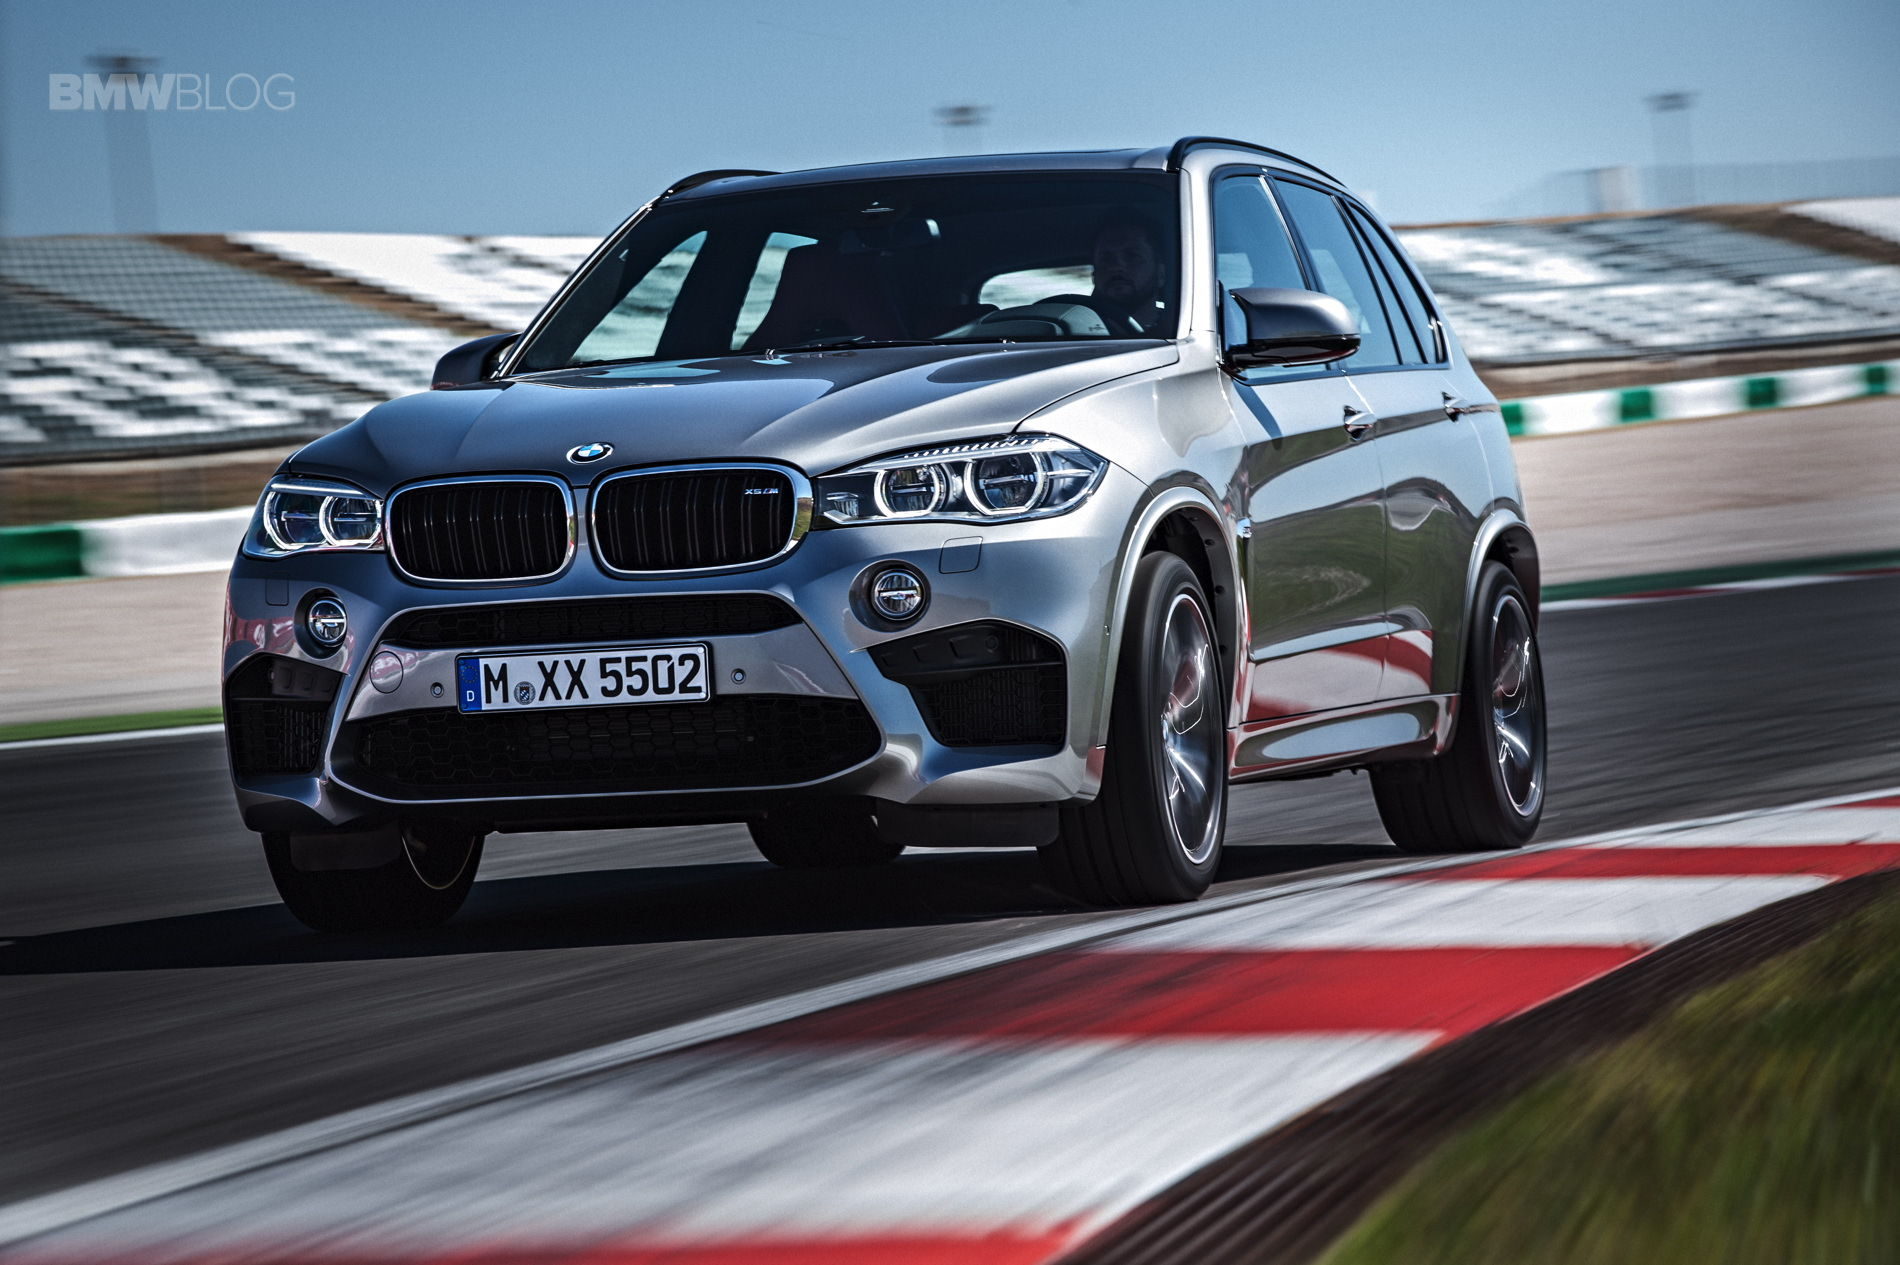 New Bmw X5 M Images 05 750x499